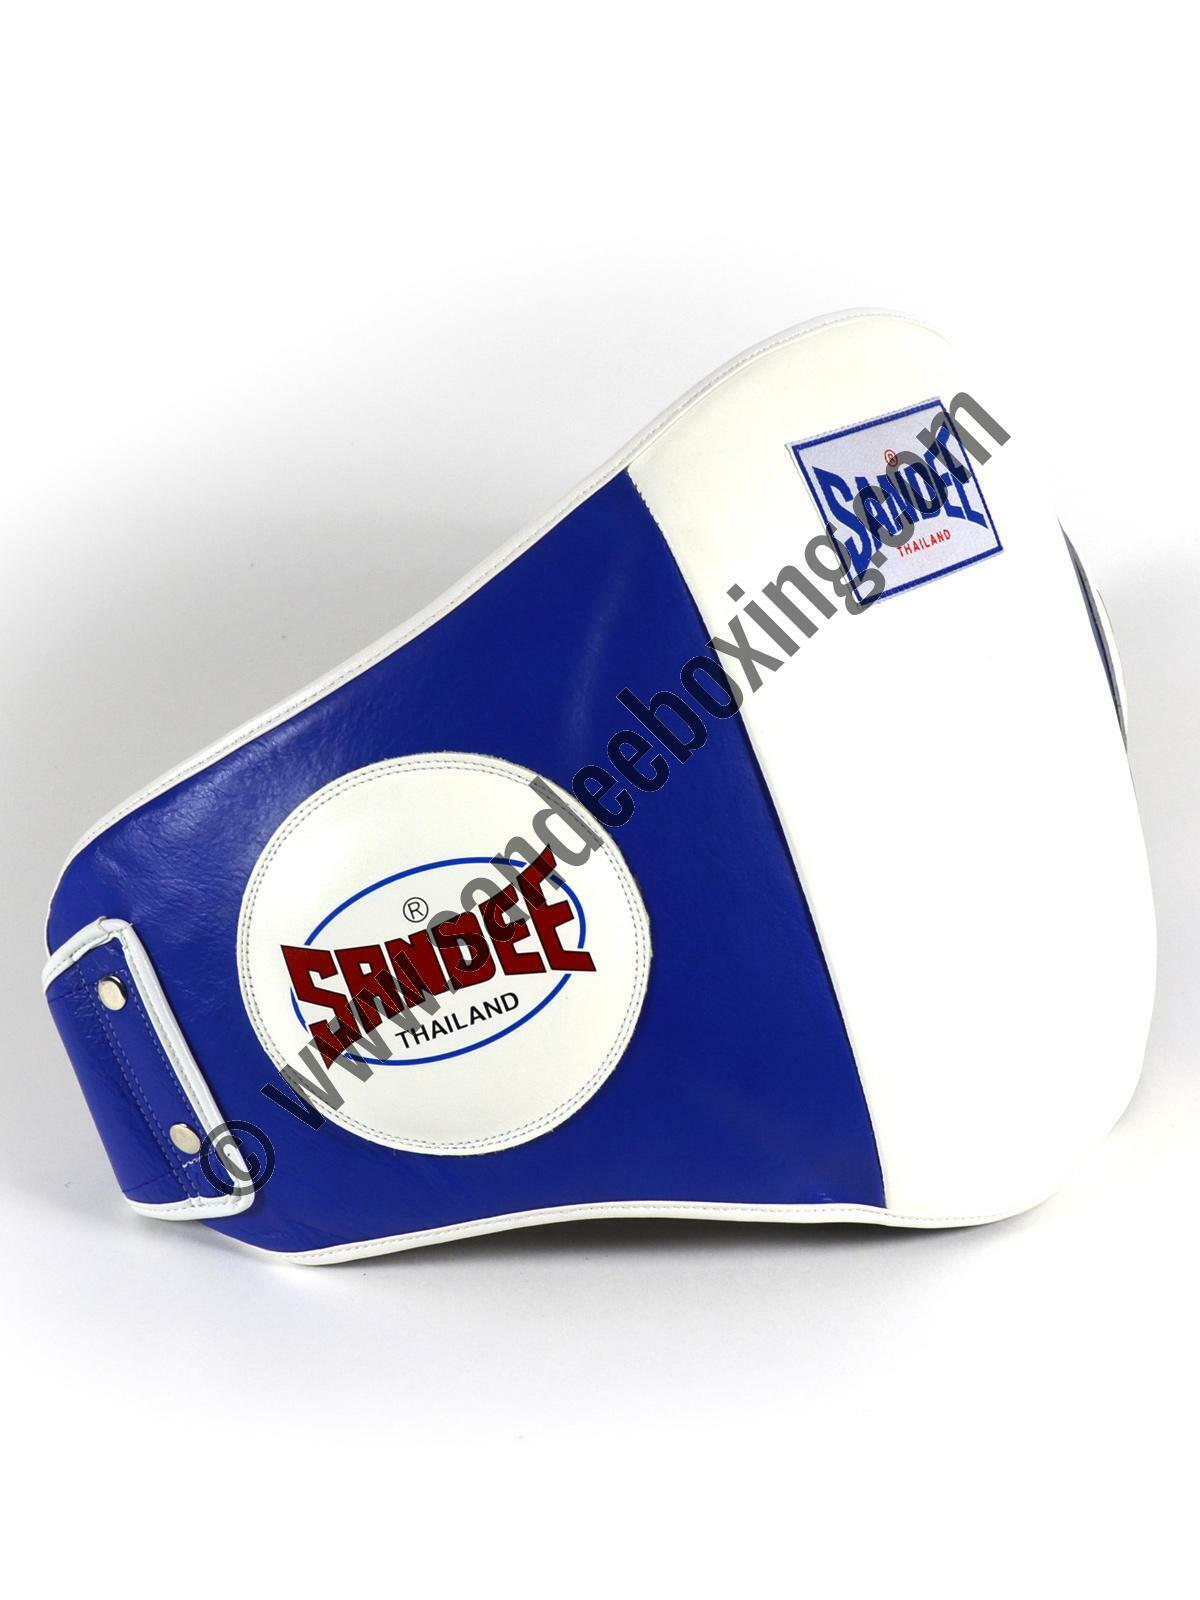 Sandee Velcro bluee & White Leather Belly Pad Muay Thai Boxing MMA UFC